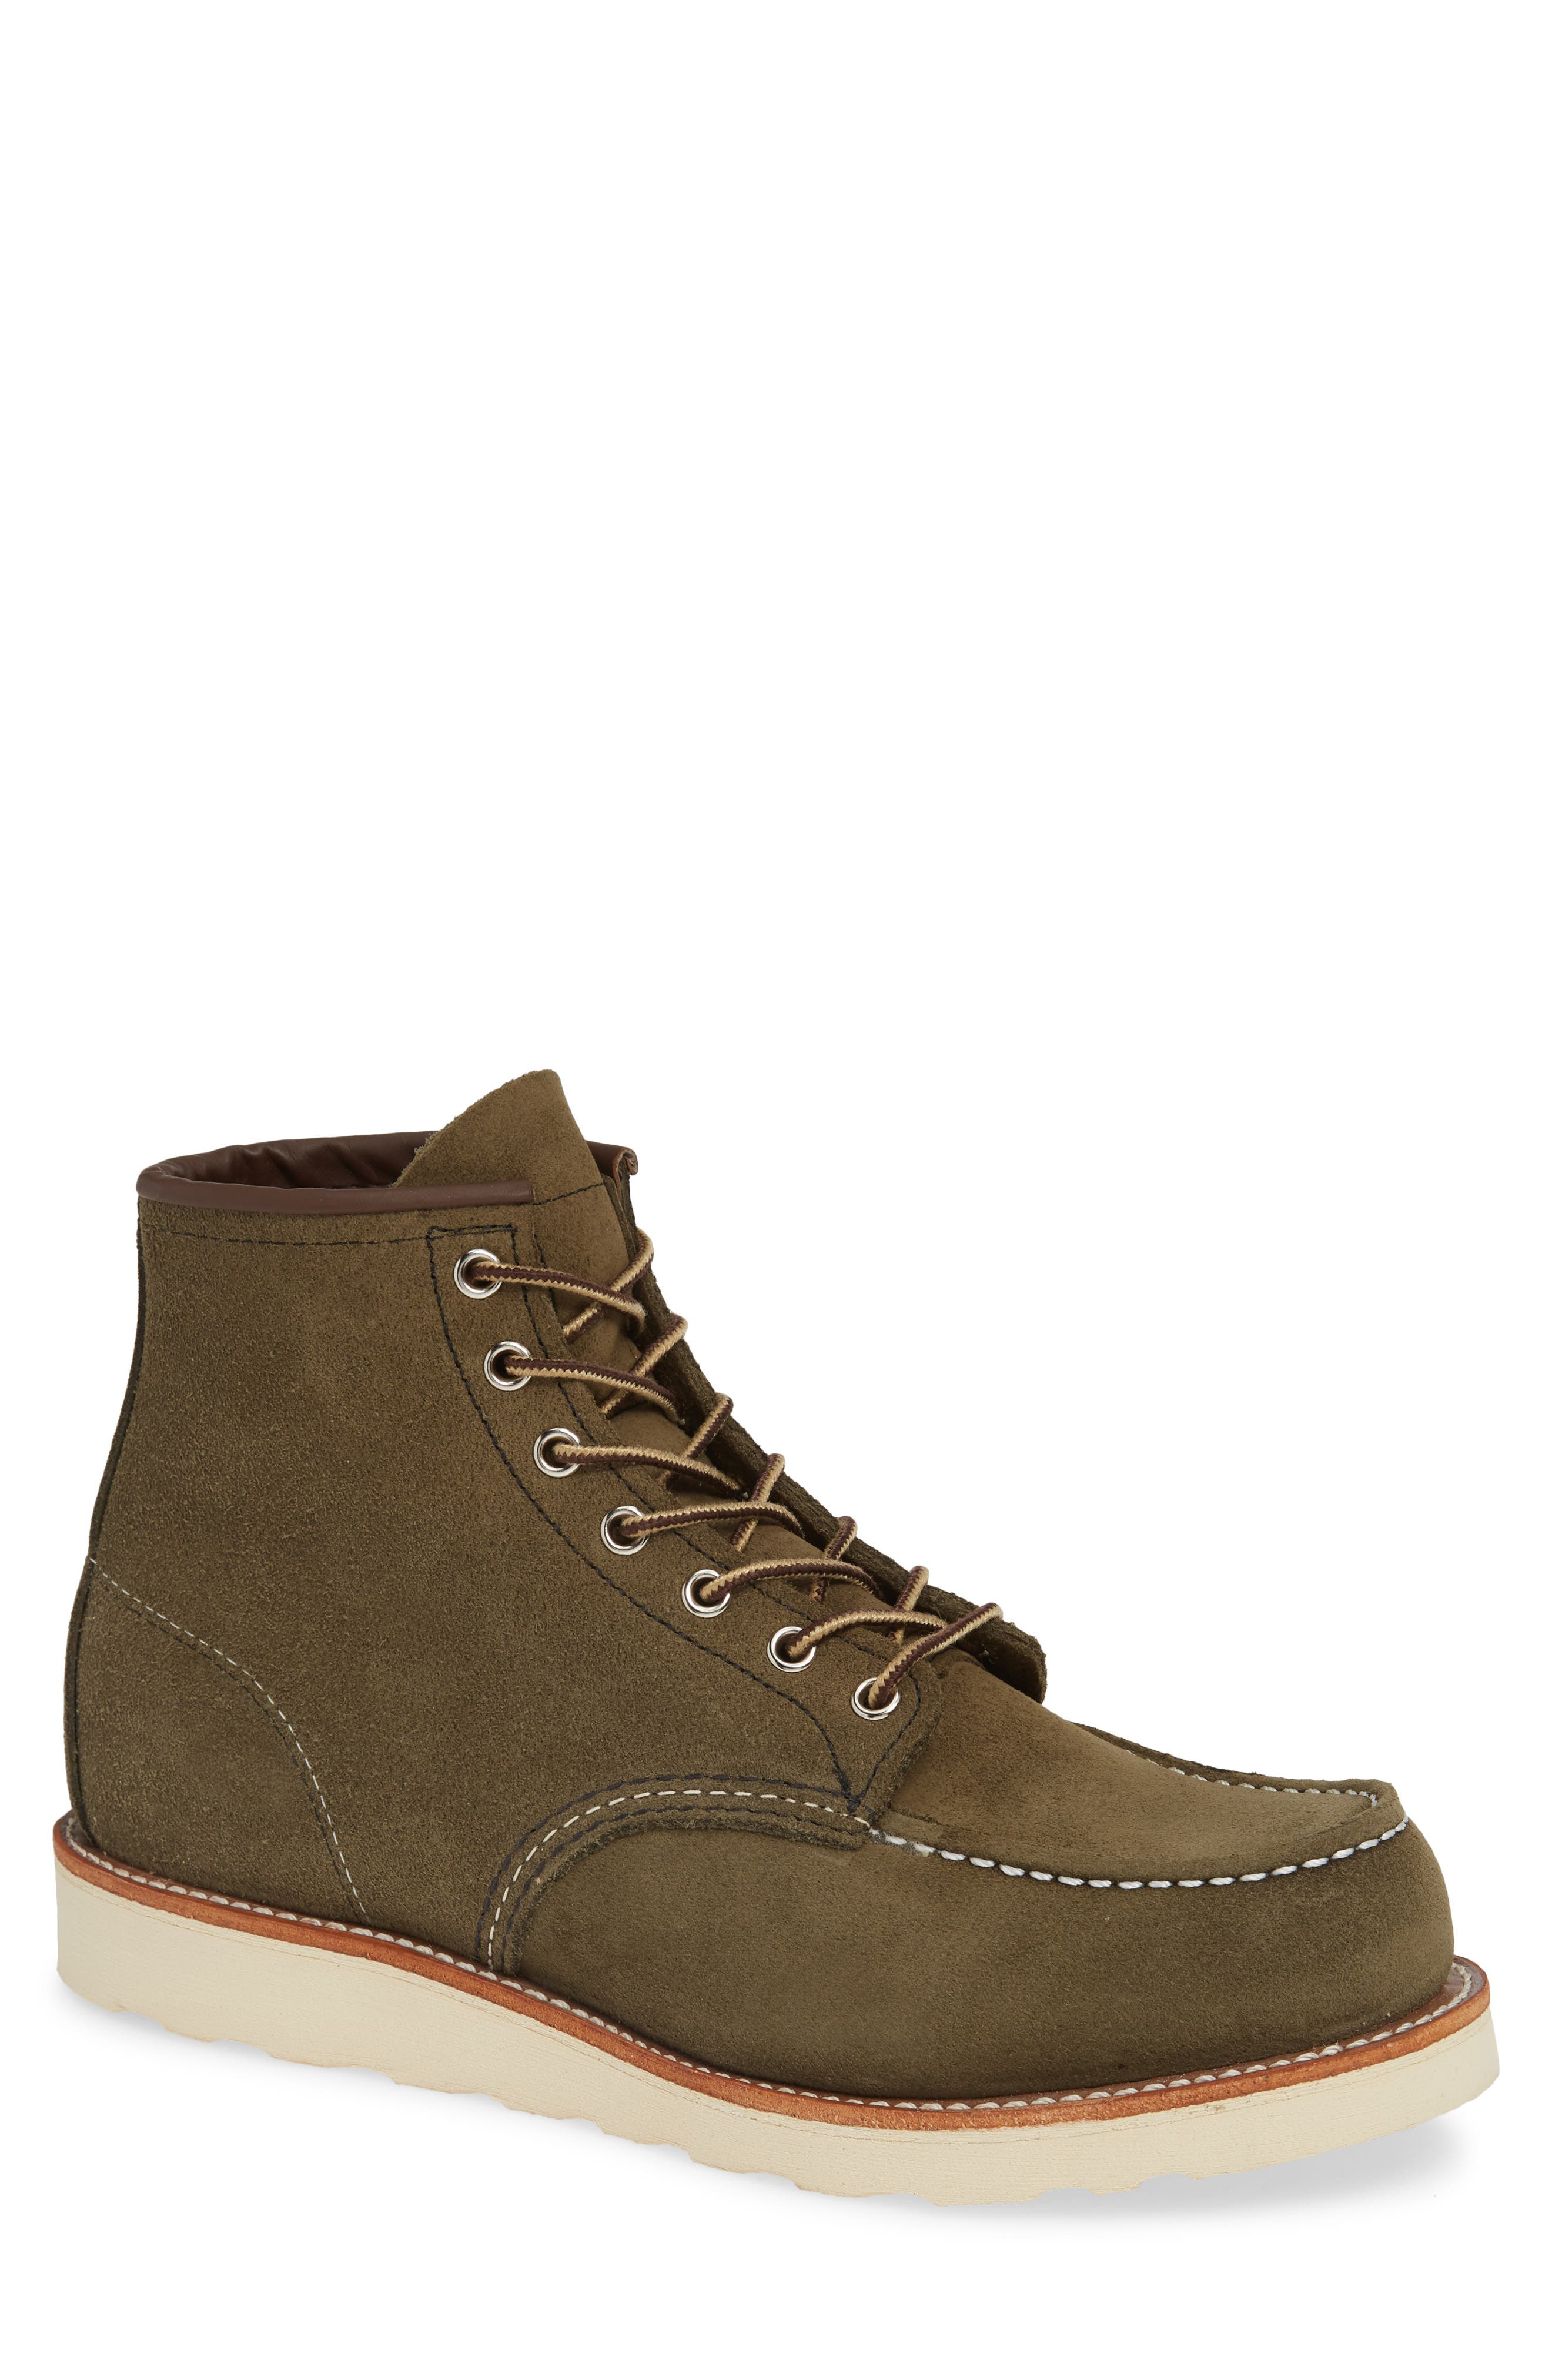 6 Inch Moc Toe Boot, Main, color, LODEN ABILENE LEATHER